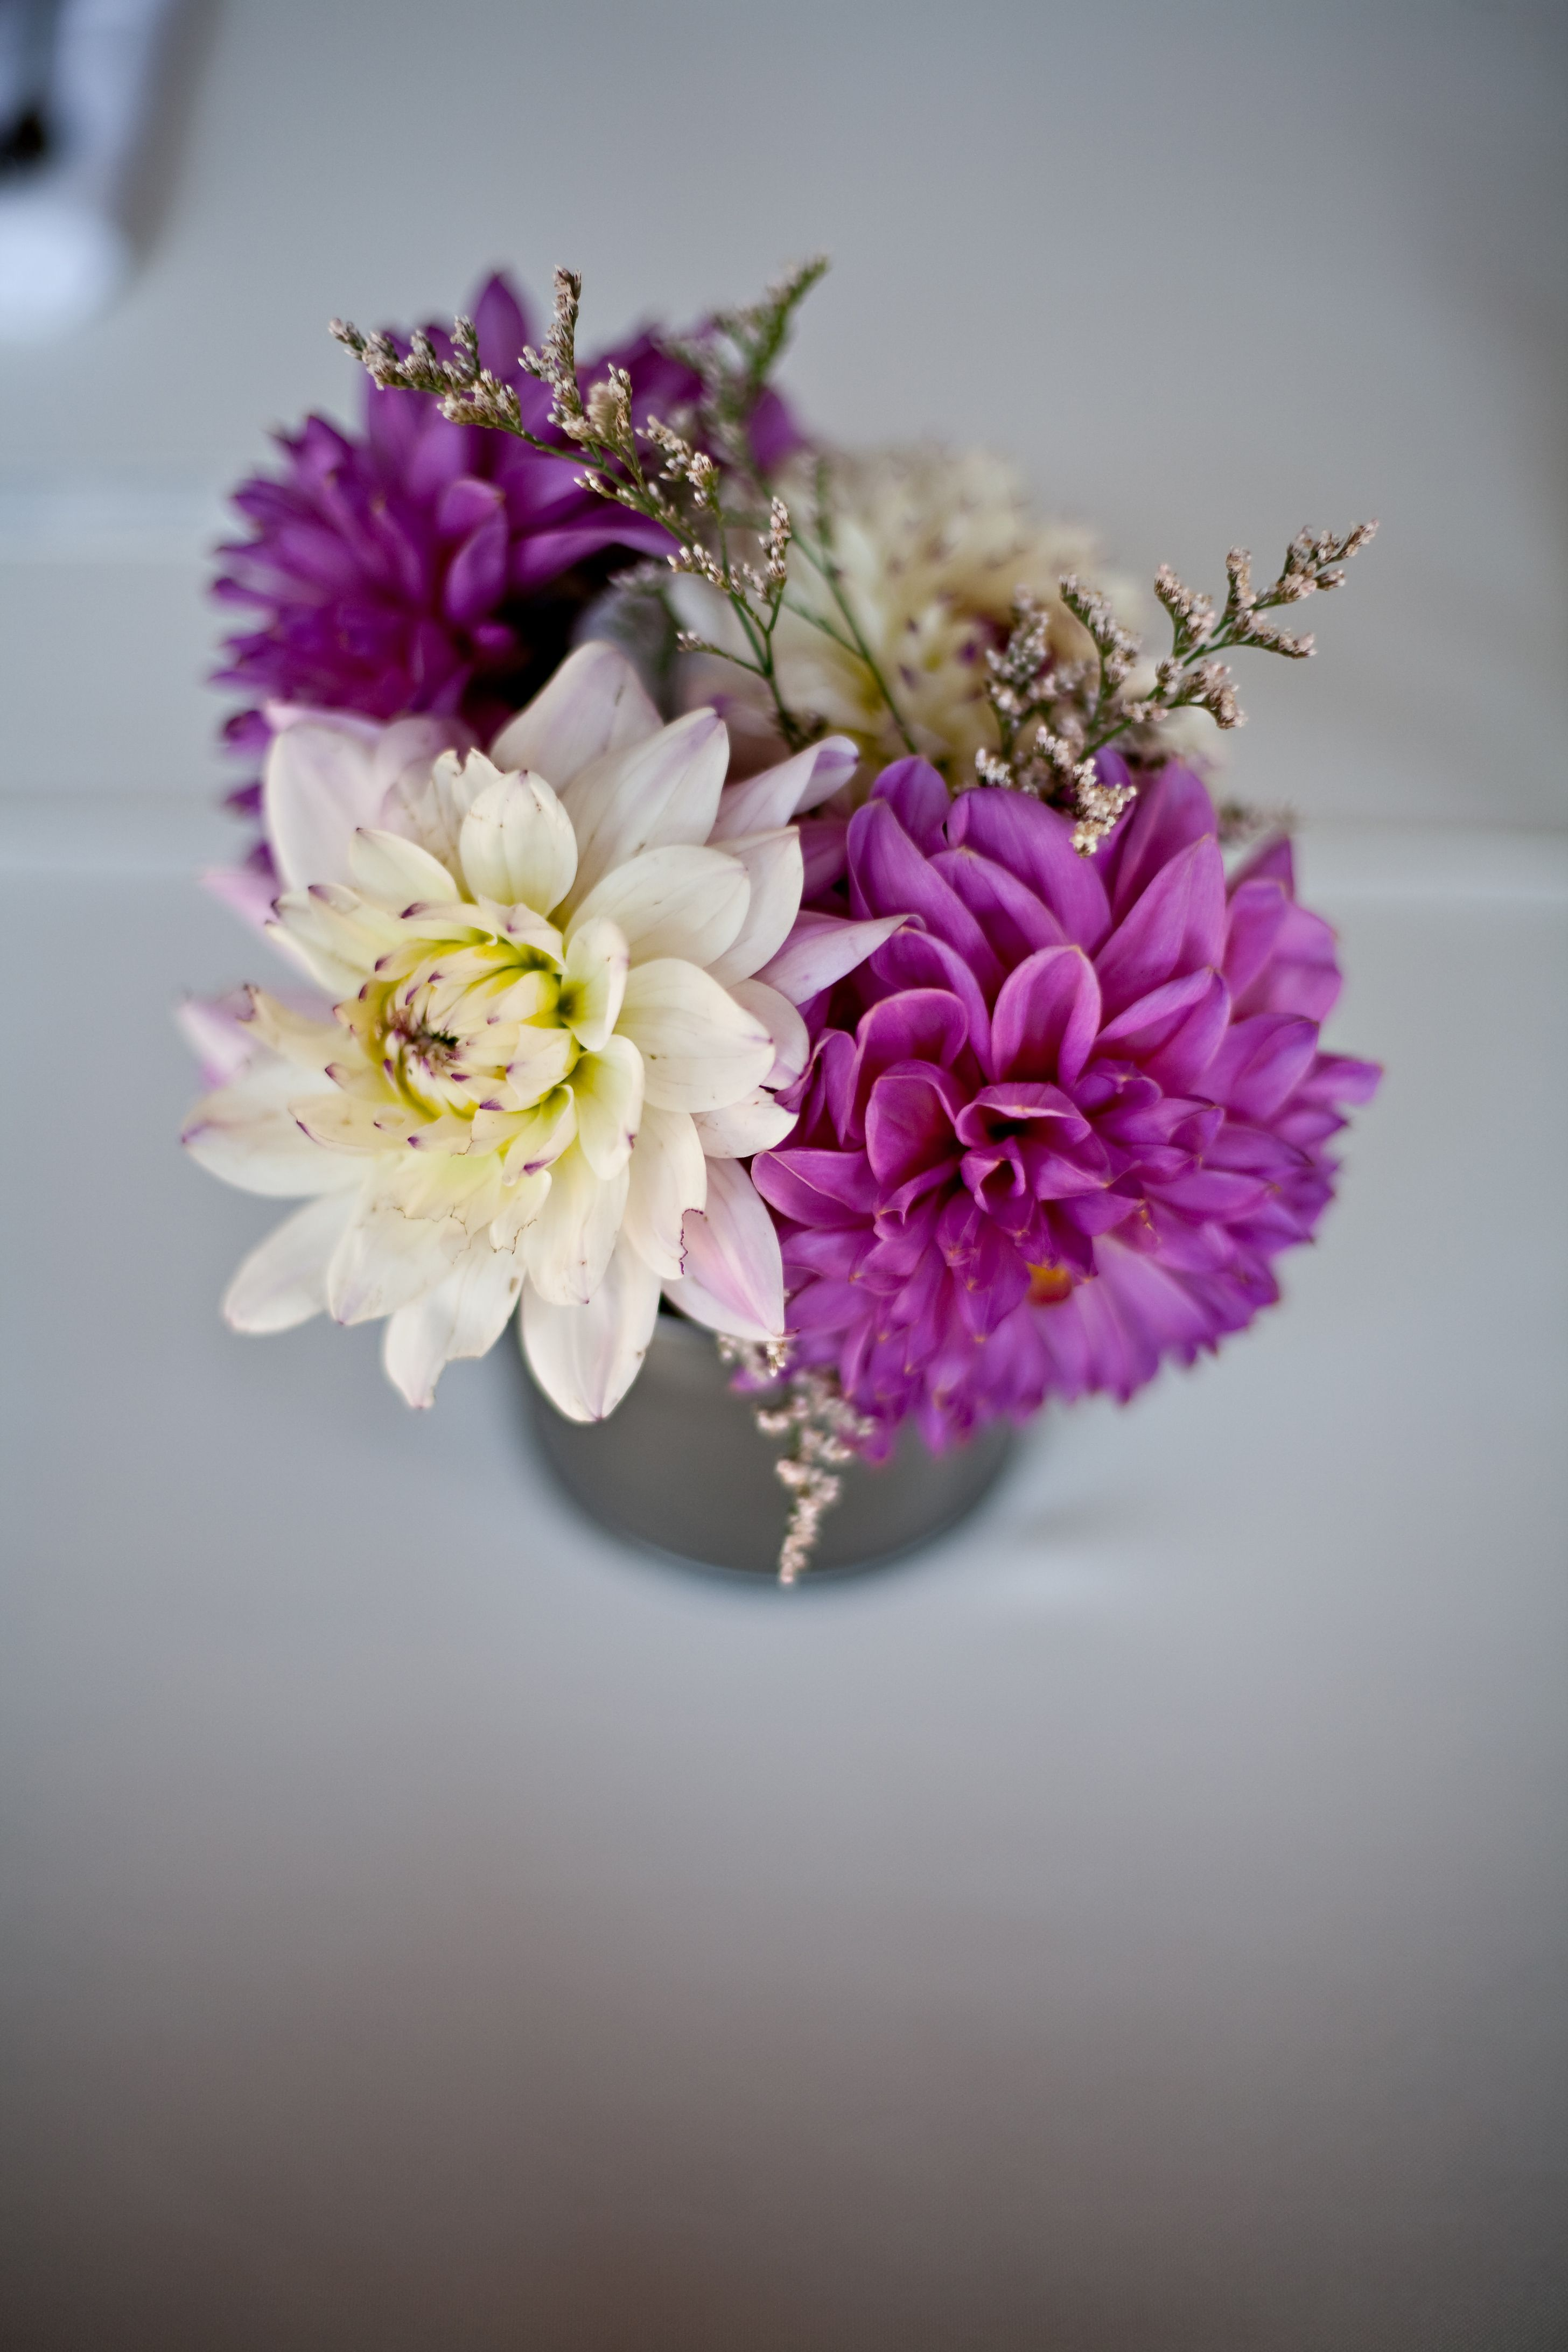 DIY Wedding Flowers 10 Simple Tips That Will Save You A Meltdown